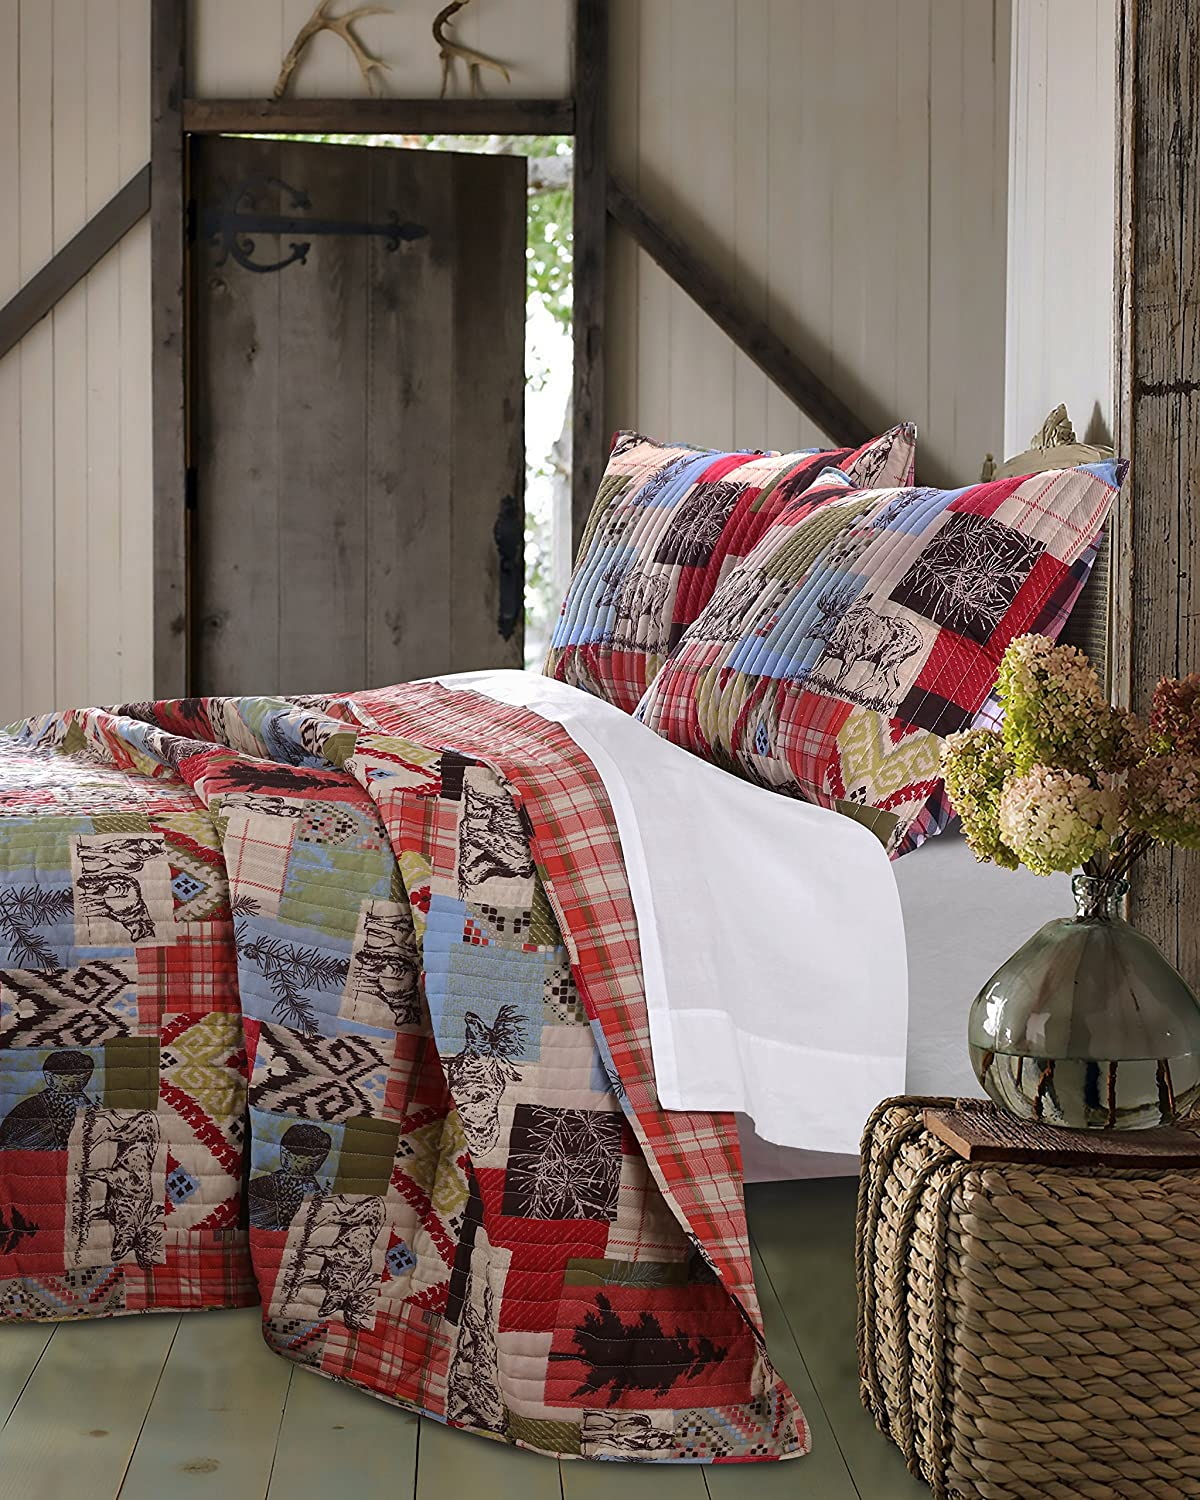 Full Queen Greenland Home GL-1509GMSK 3 Piece Rustic Lodge Quilt Set, King